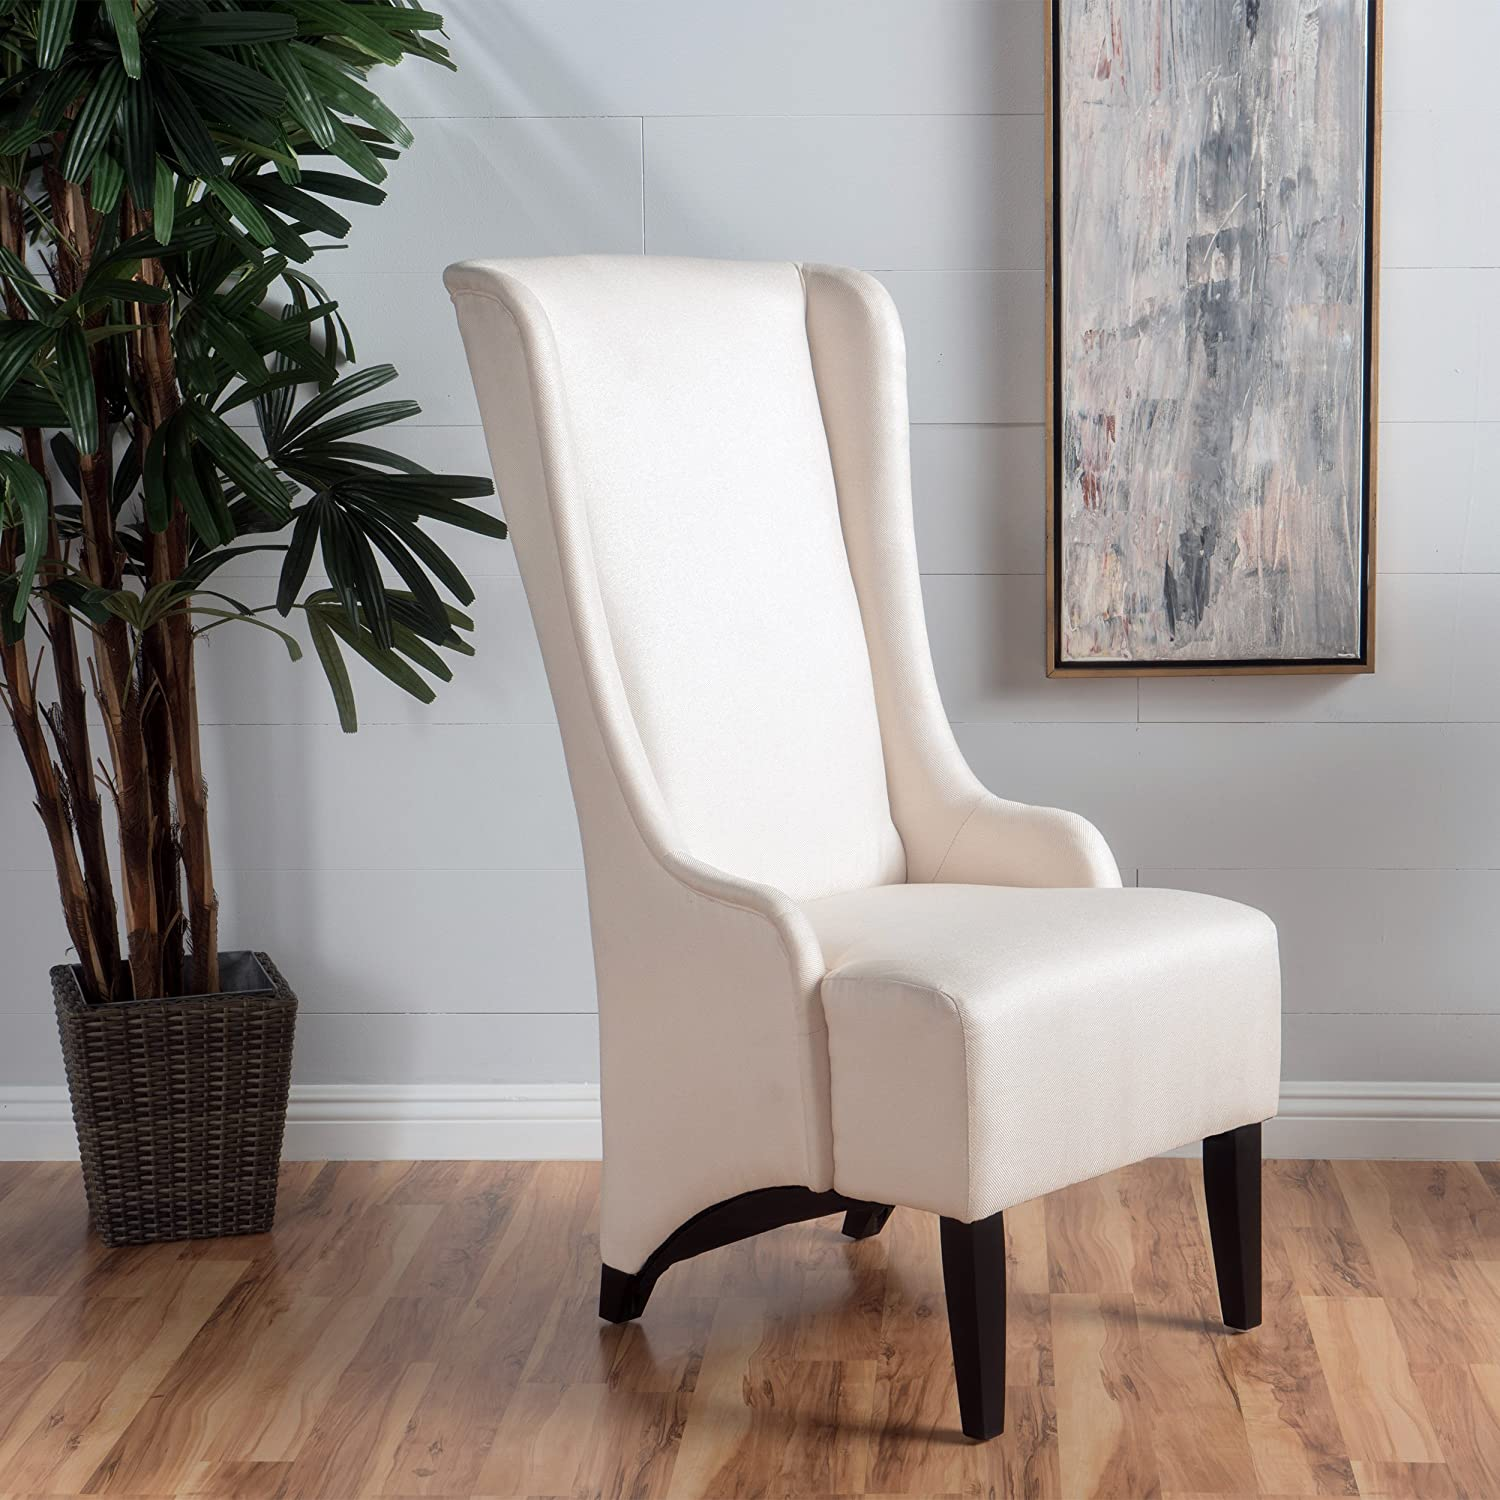 Christopher Knight Home Callie Dining Chair, 23.25 x 28.75 x 46.25 , Beige